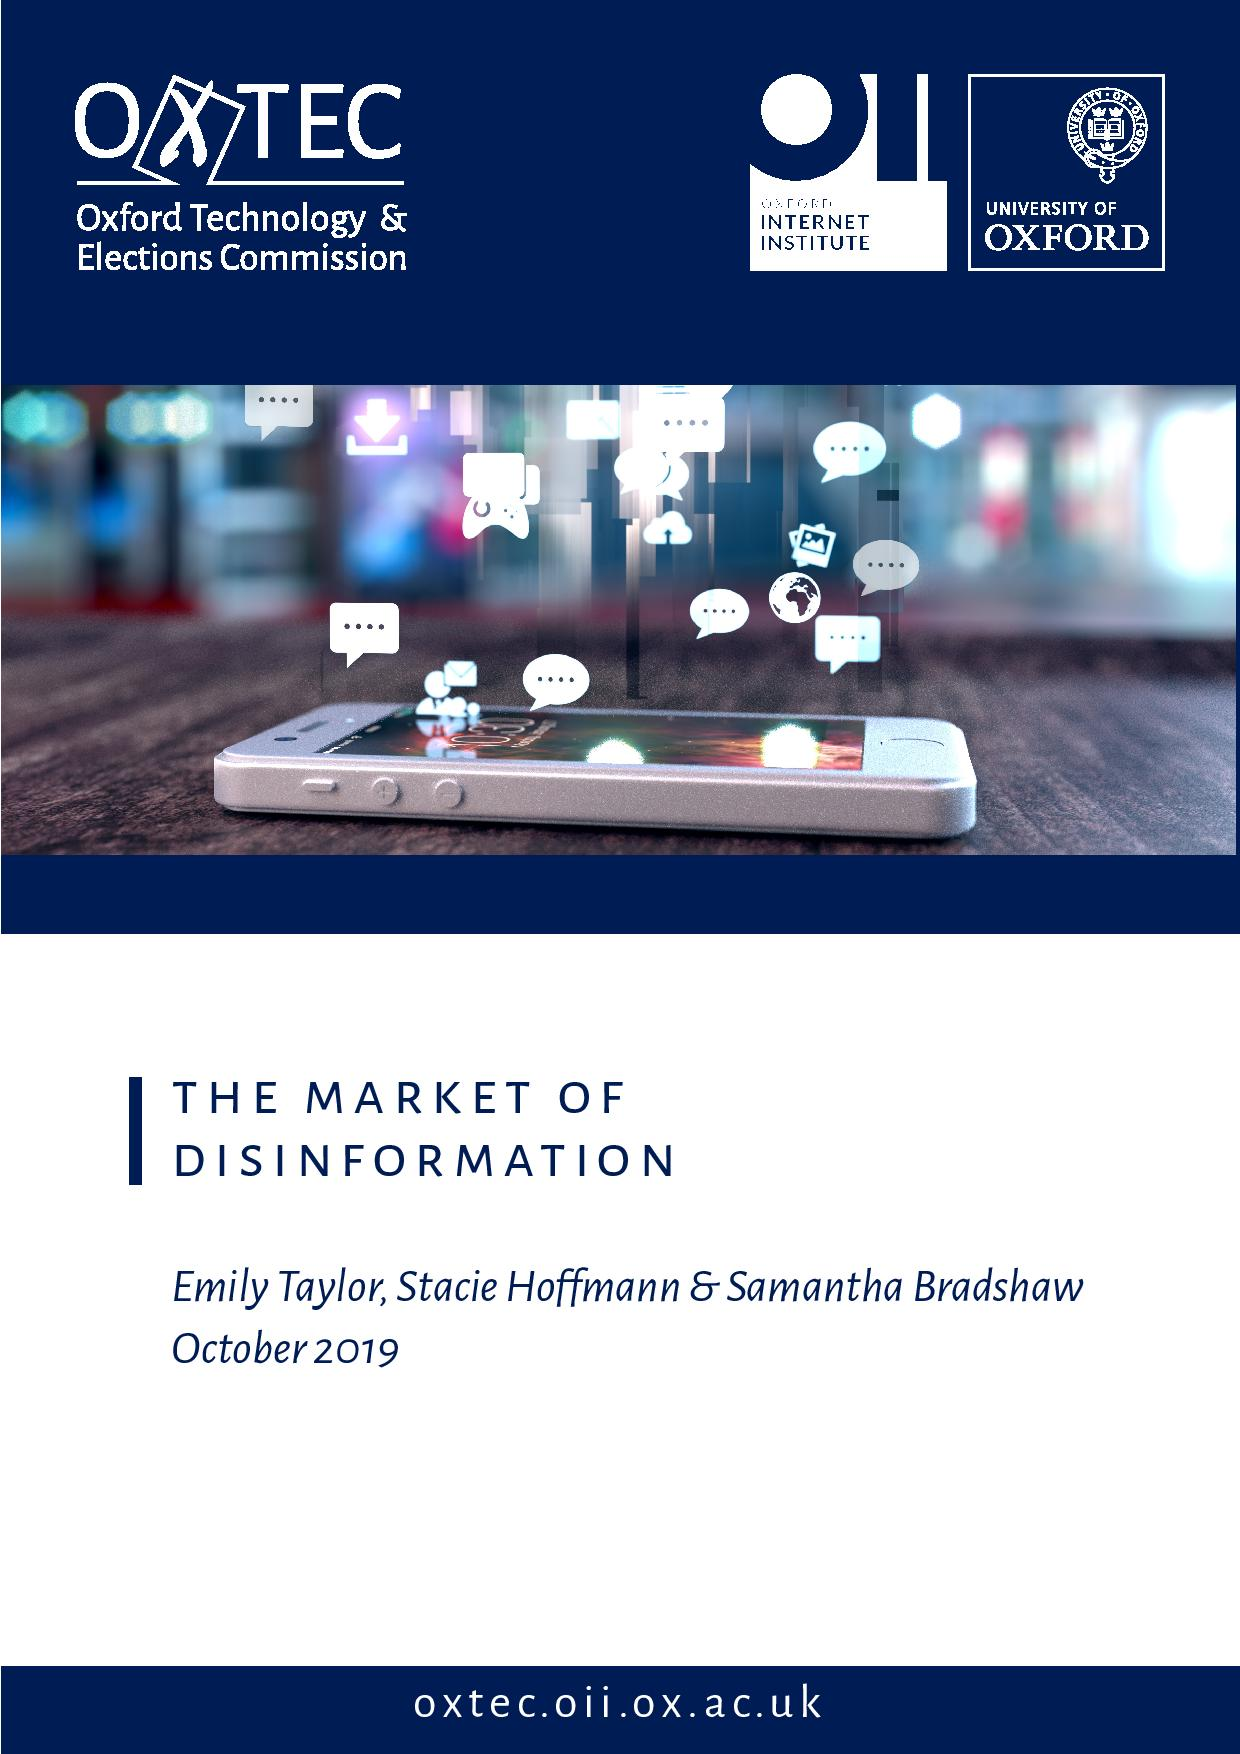 The Market of Disinformation